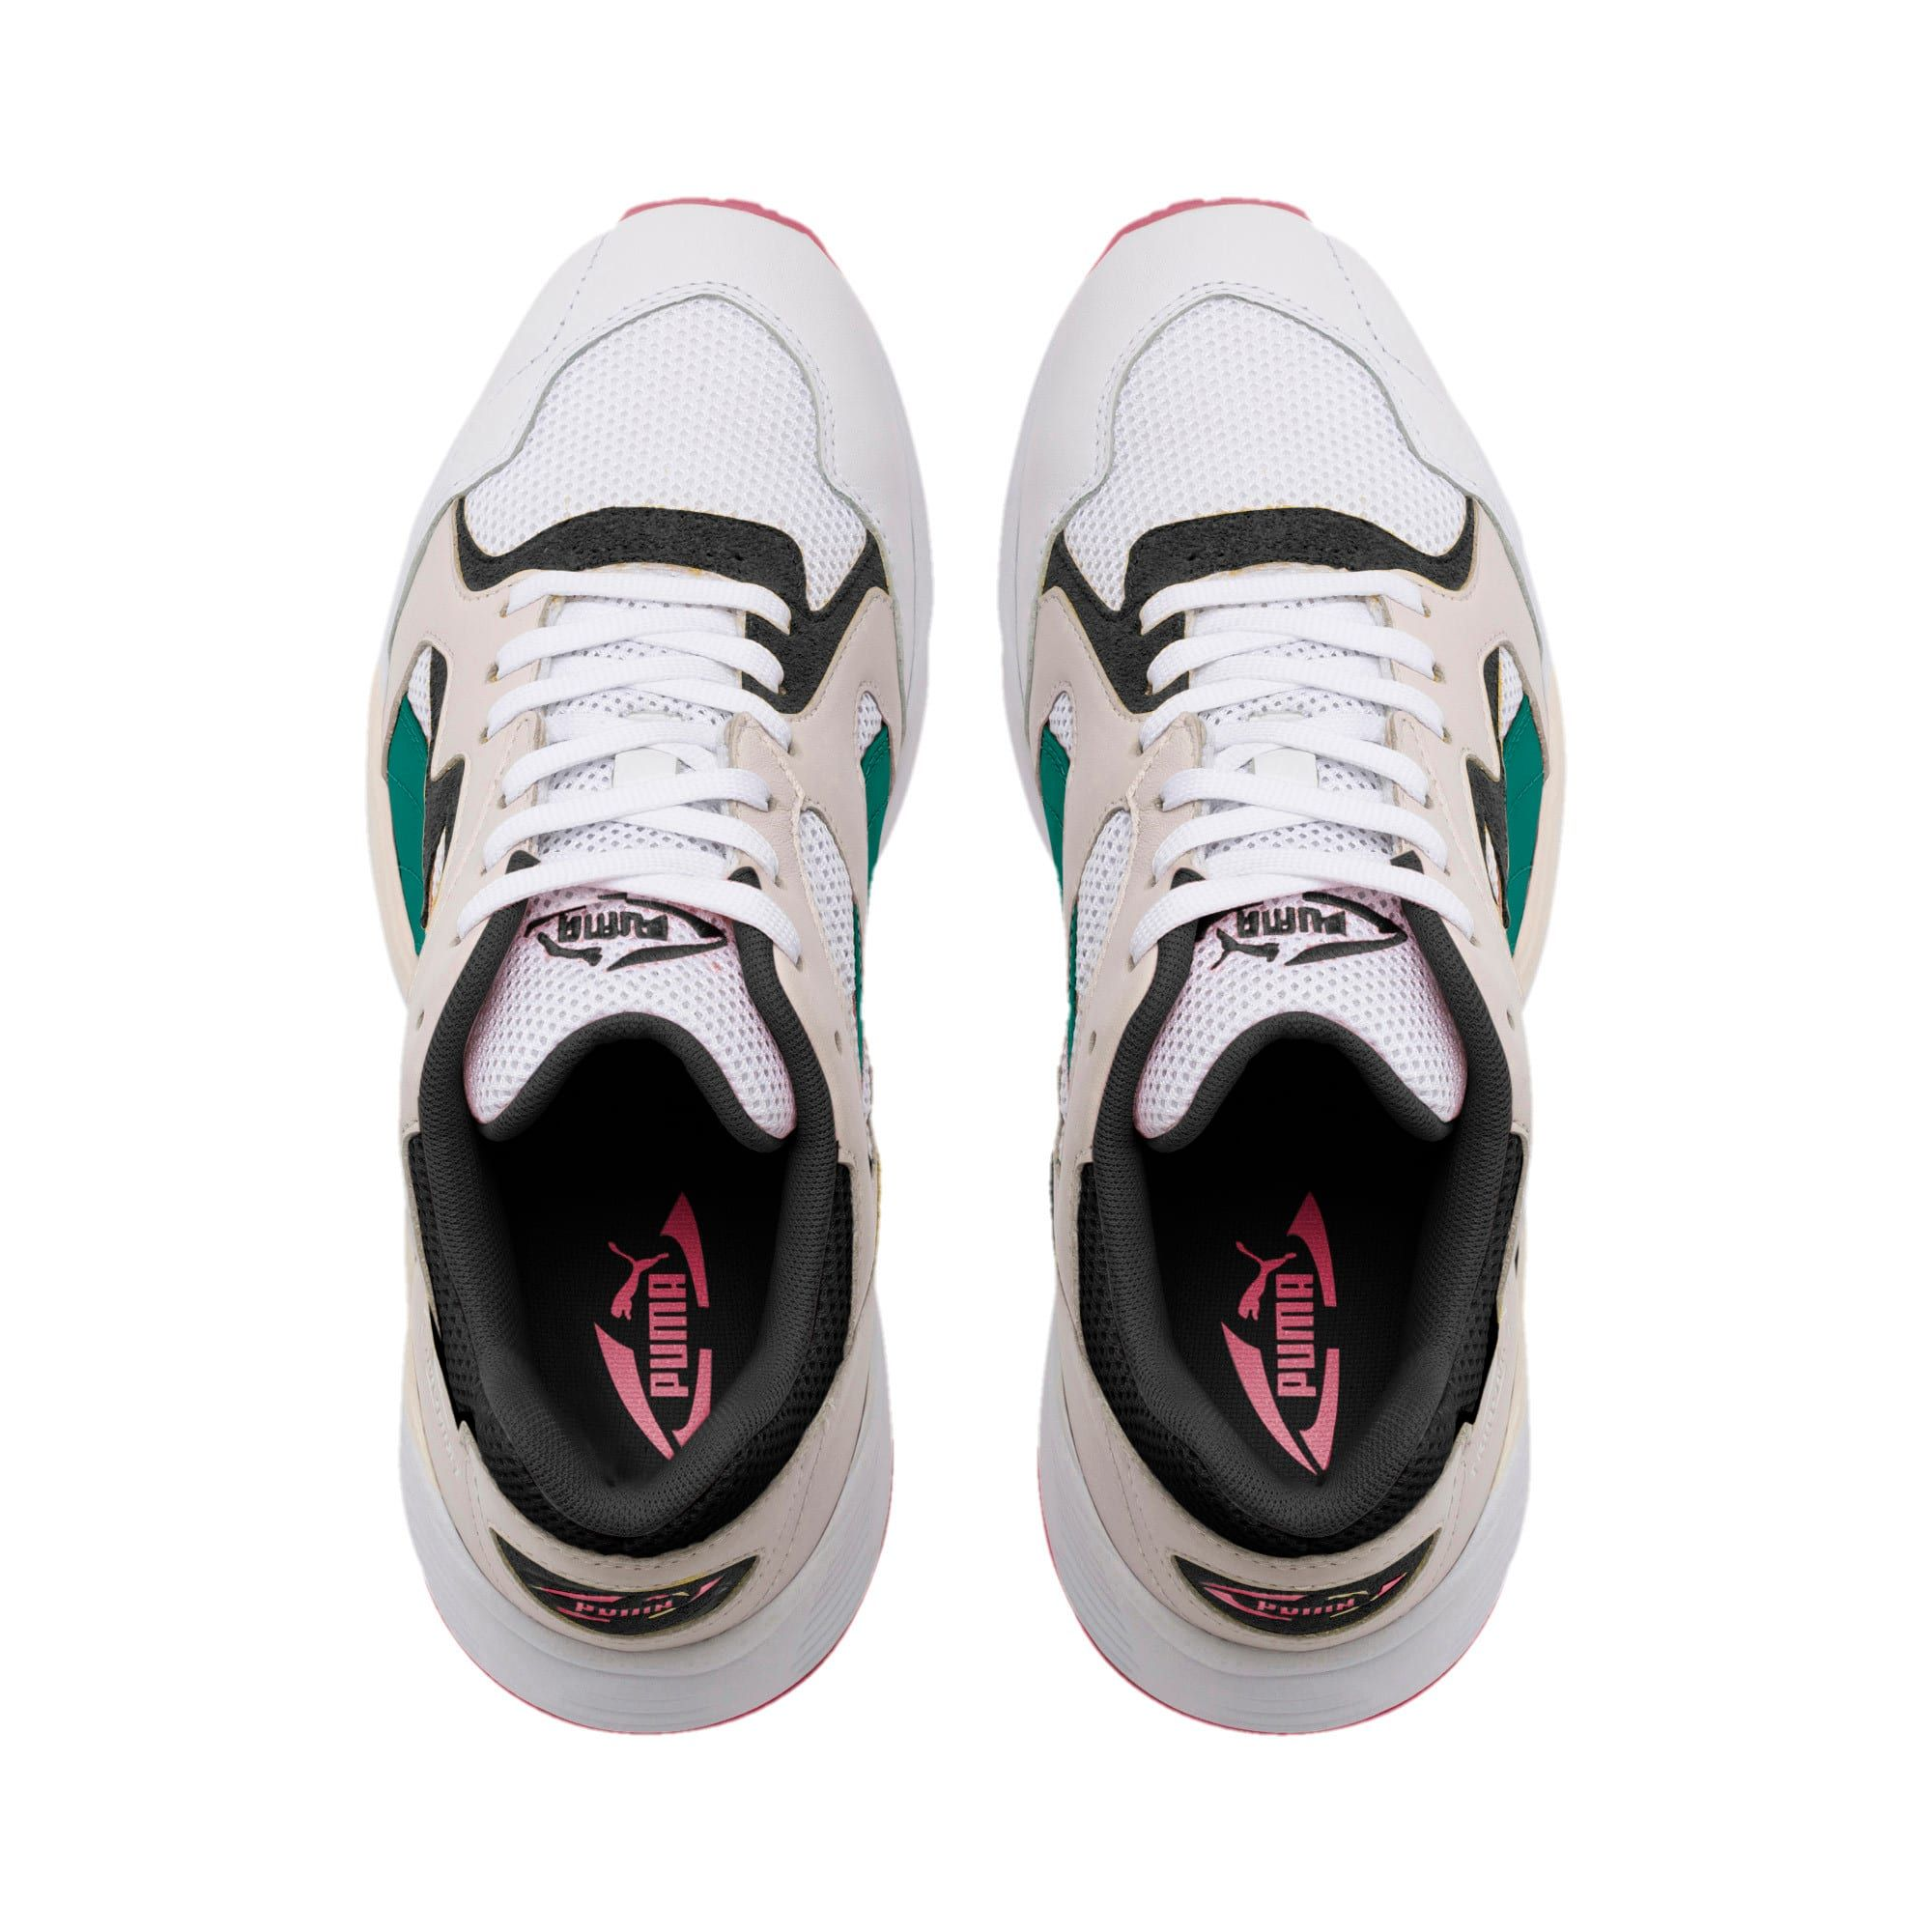 Men's PUMA Prevail Classic Trainers in White/Teal Green size 7.5